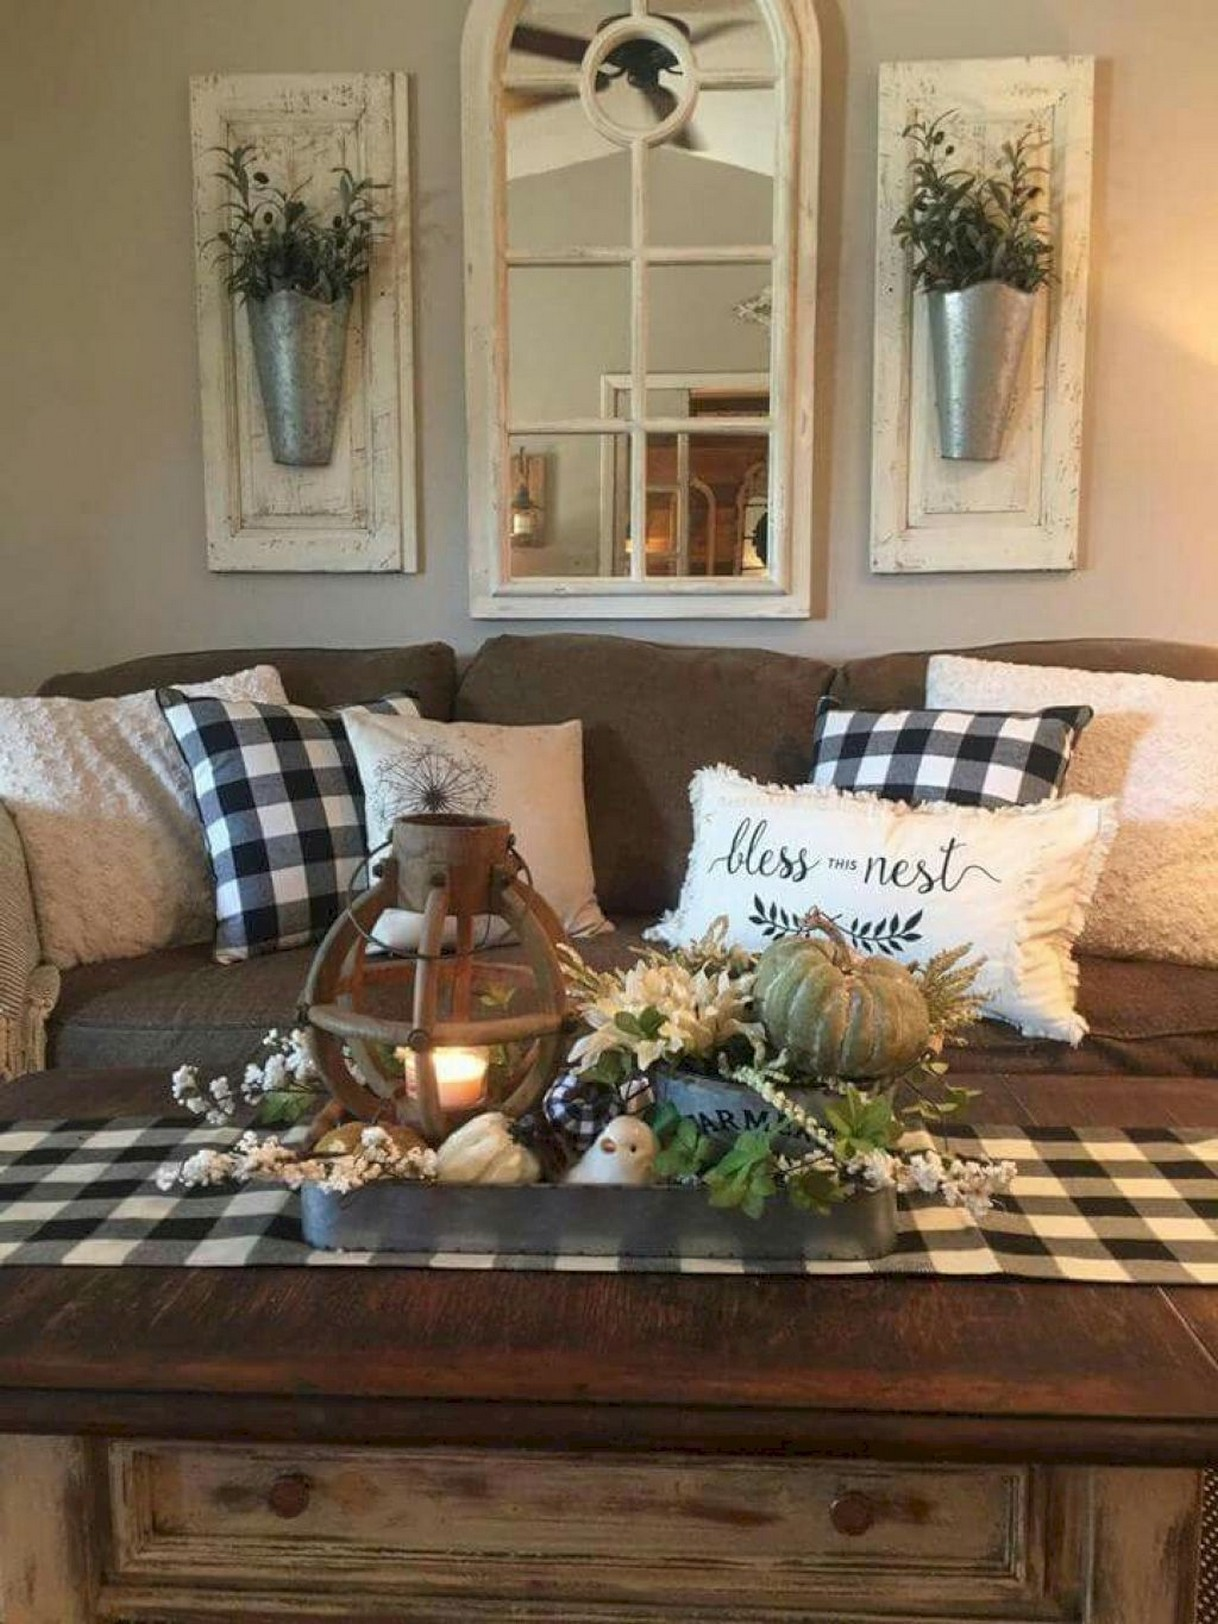 67 Rustic Home Decorating Ideas In 2020 Home Decor 31